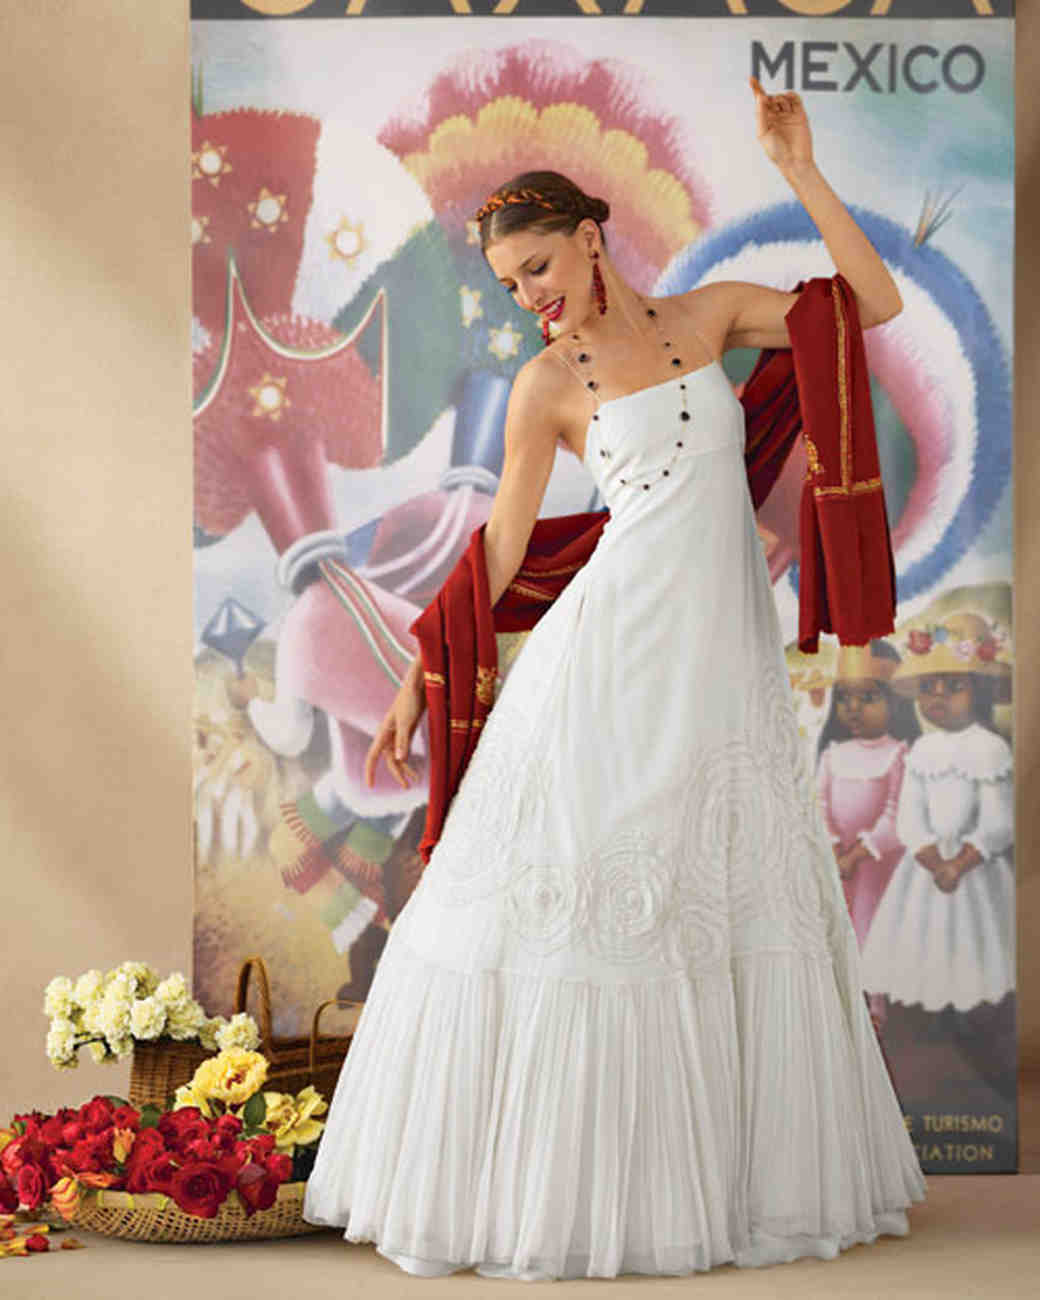 Wedding Dress Inspired By Oaxaca Mexico